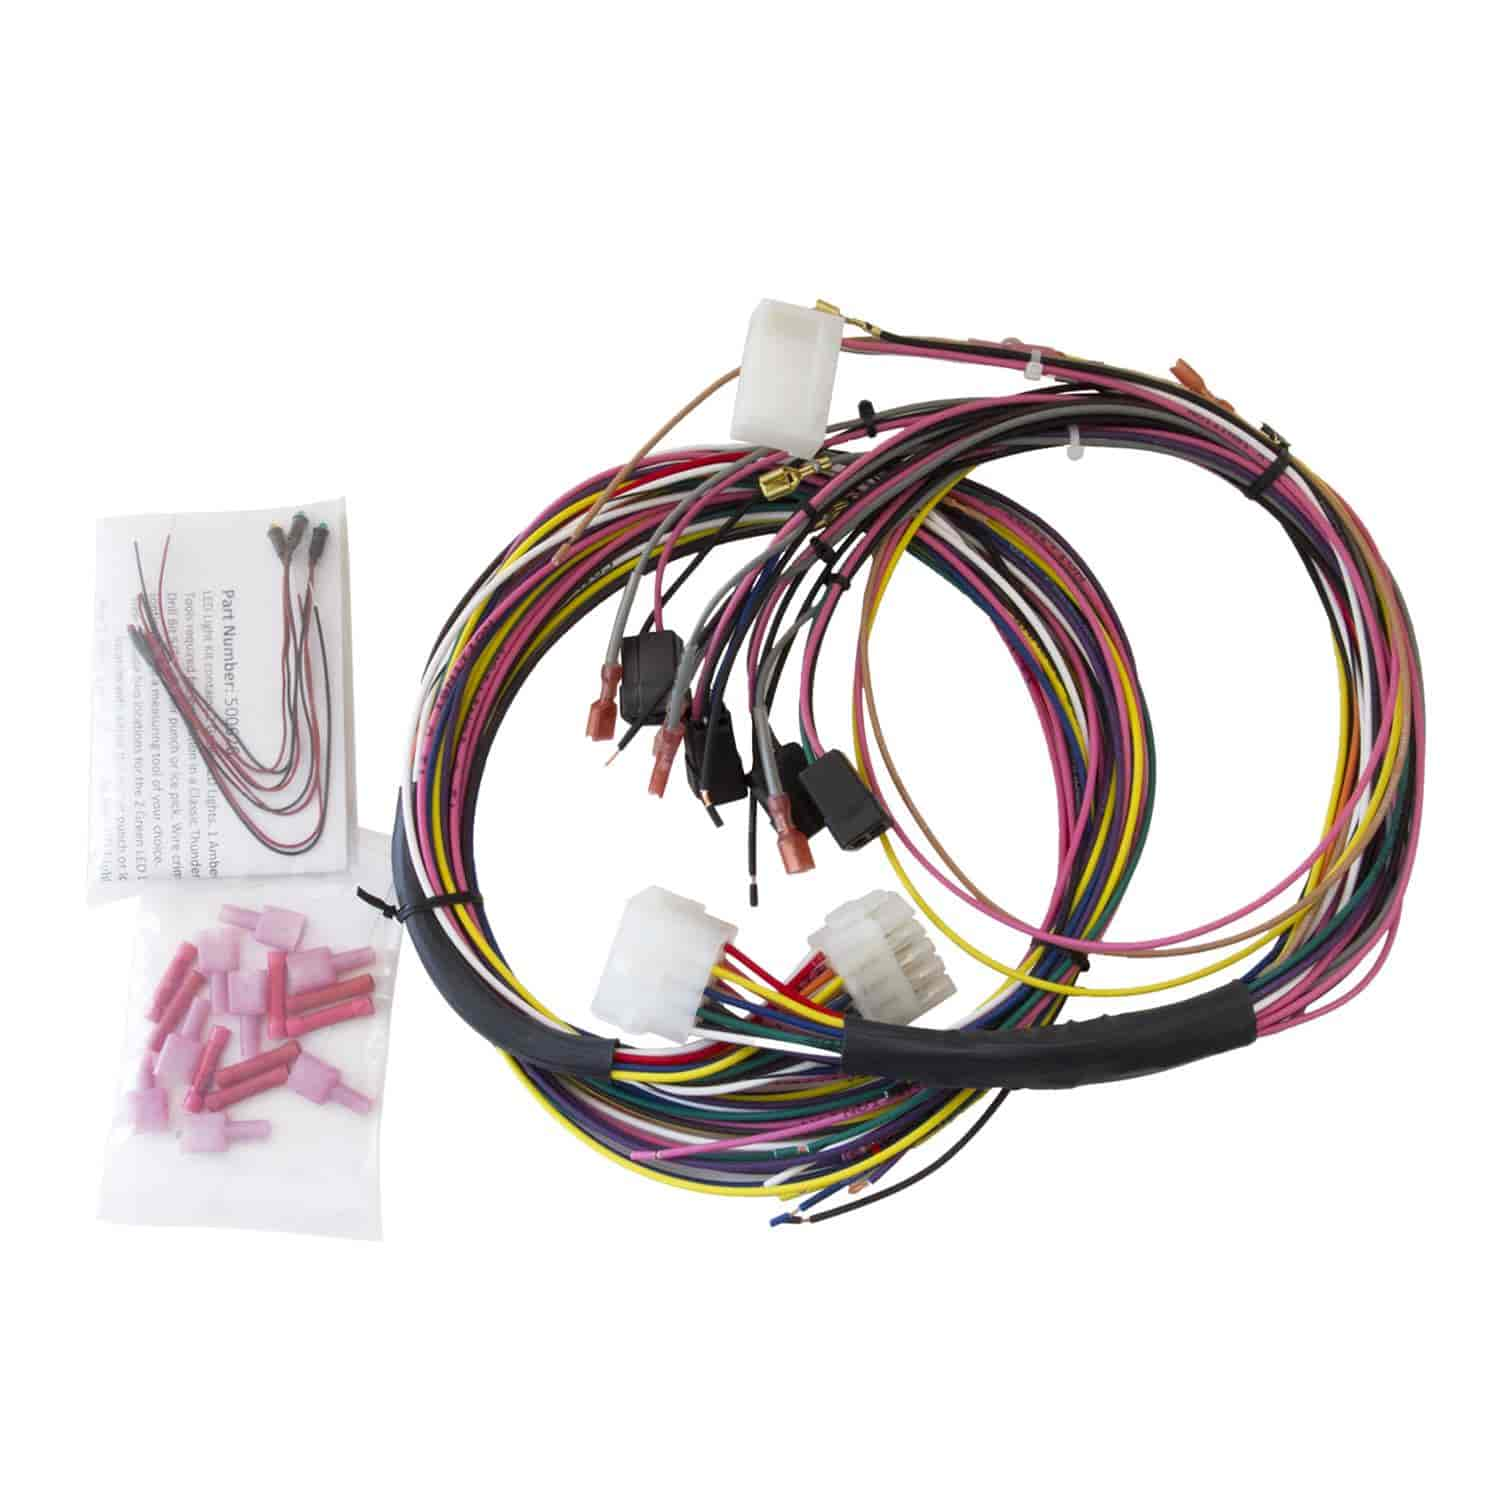 105 2198 auto meter 2198 replacement wiring harness universal jegs VW Wiring Harness Kits at suagrazia.org